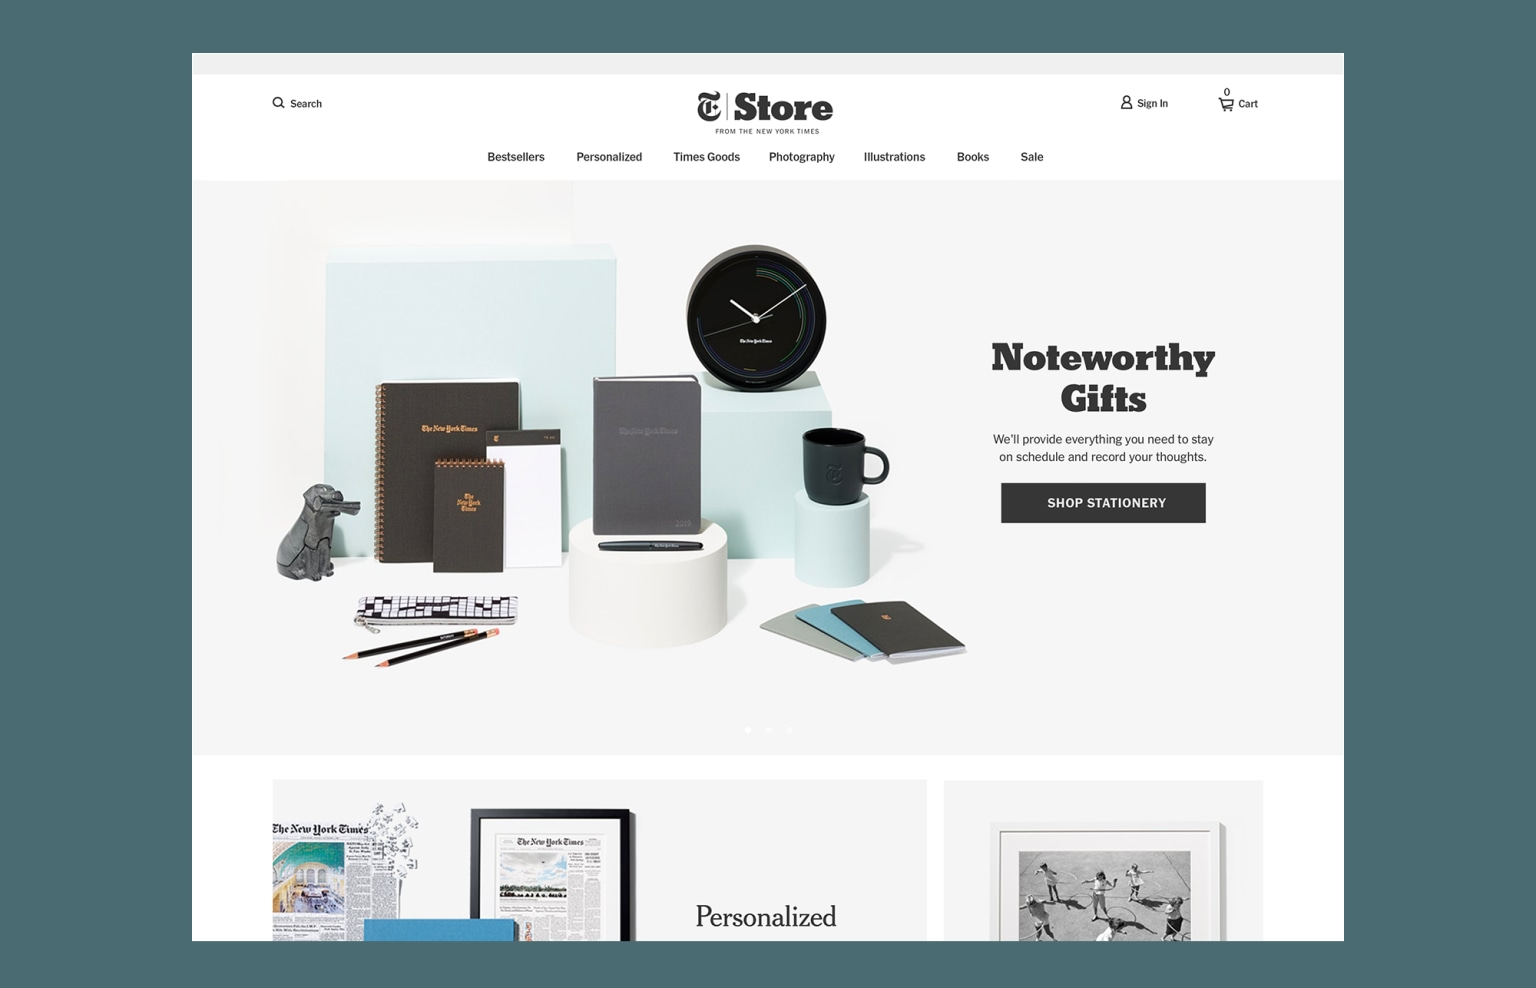 New York Times Store Website Redesign